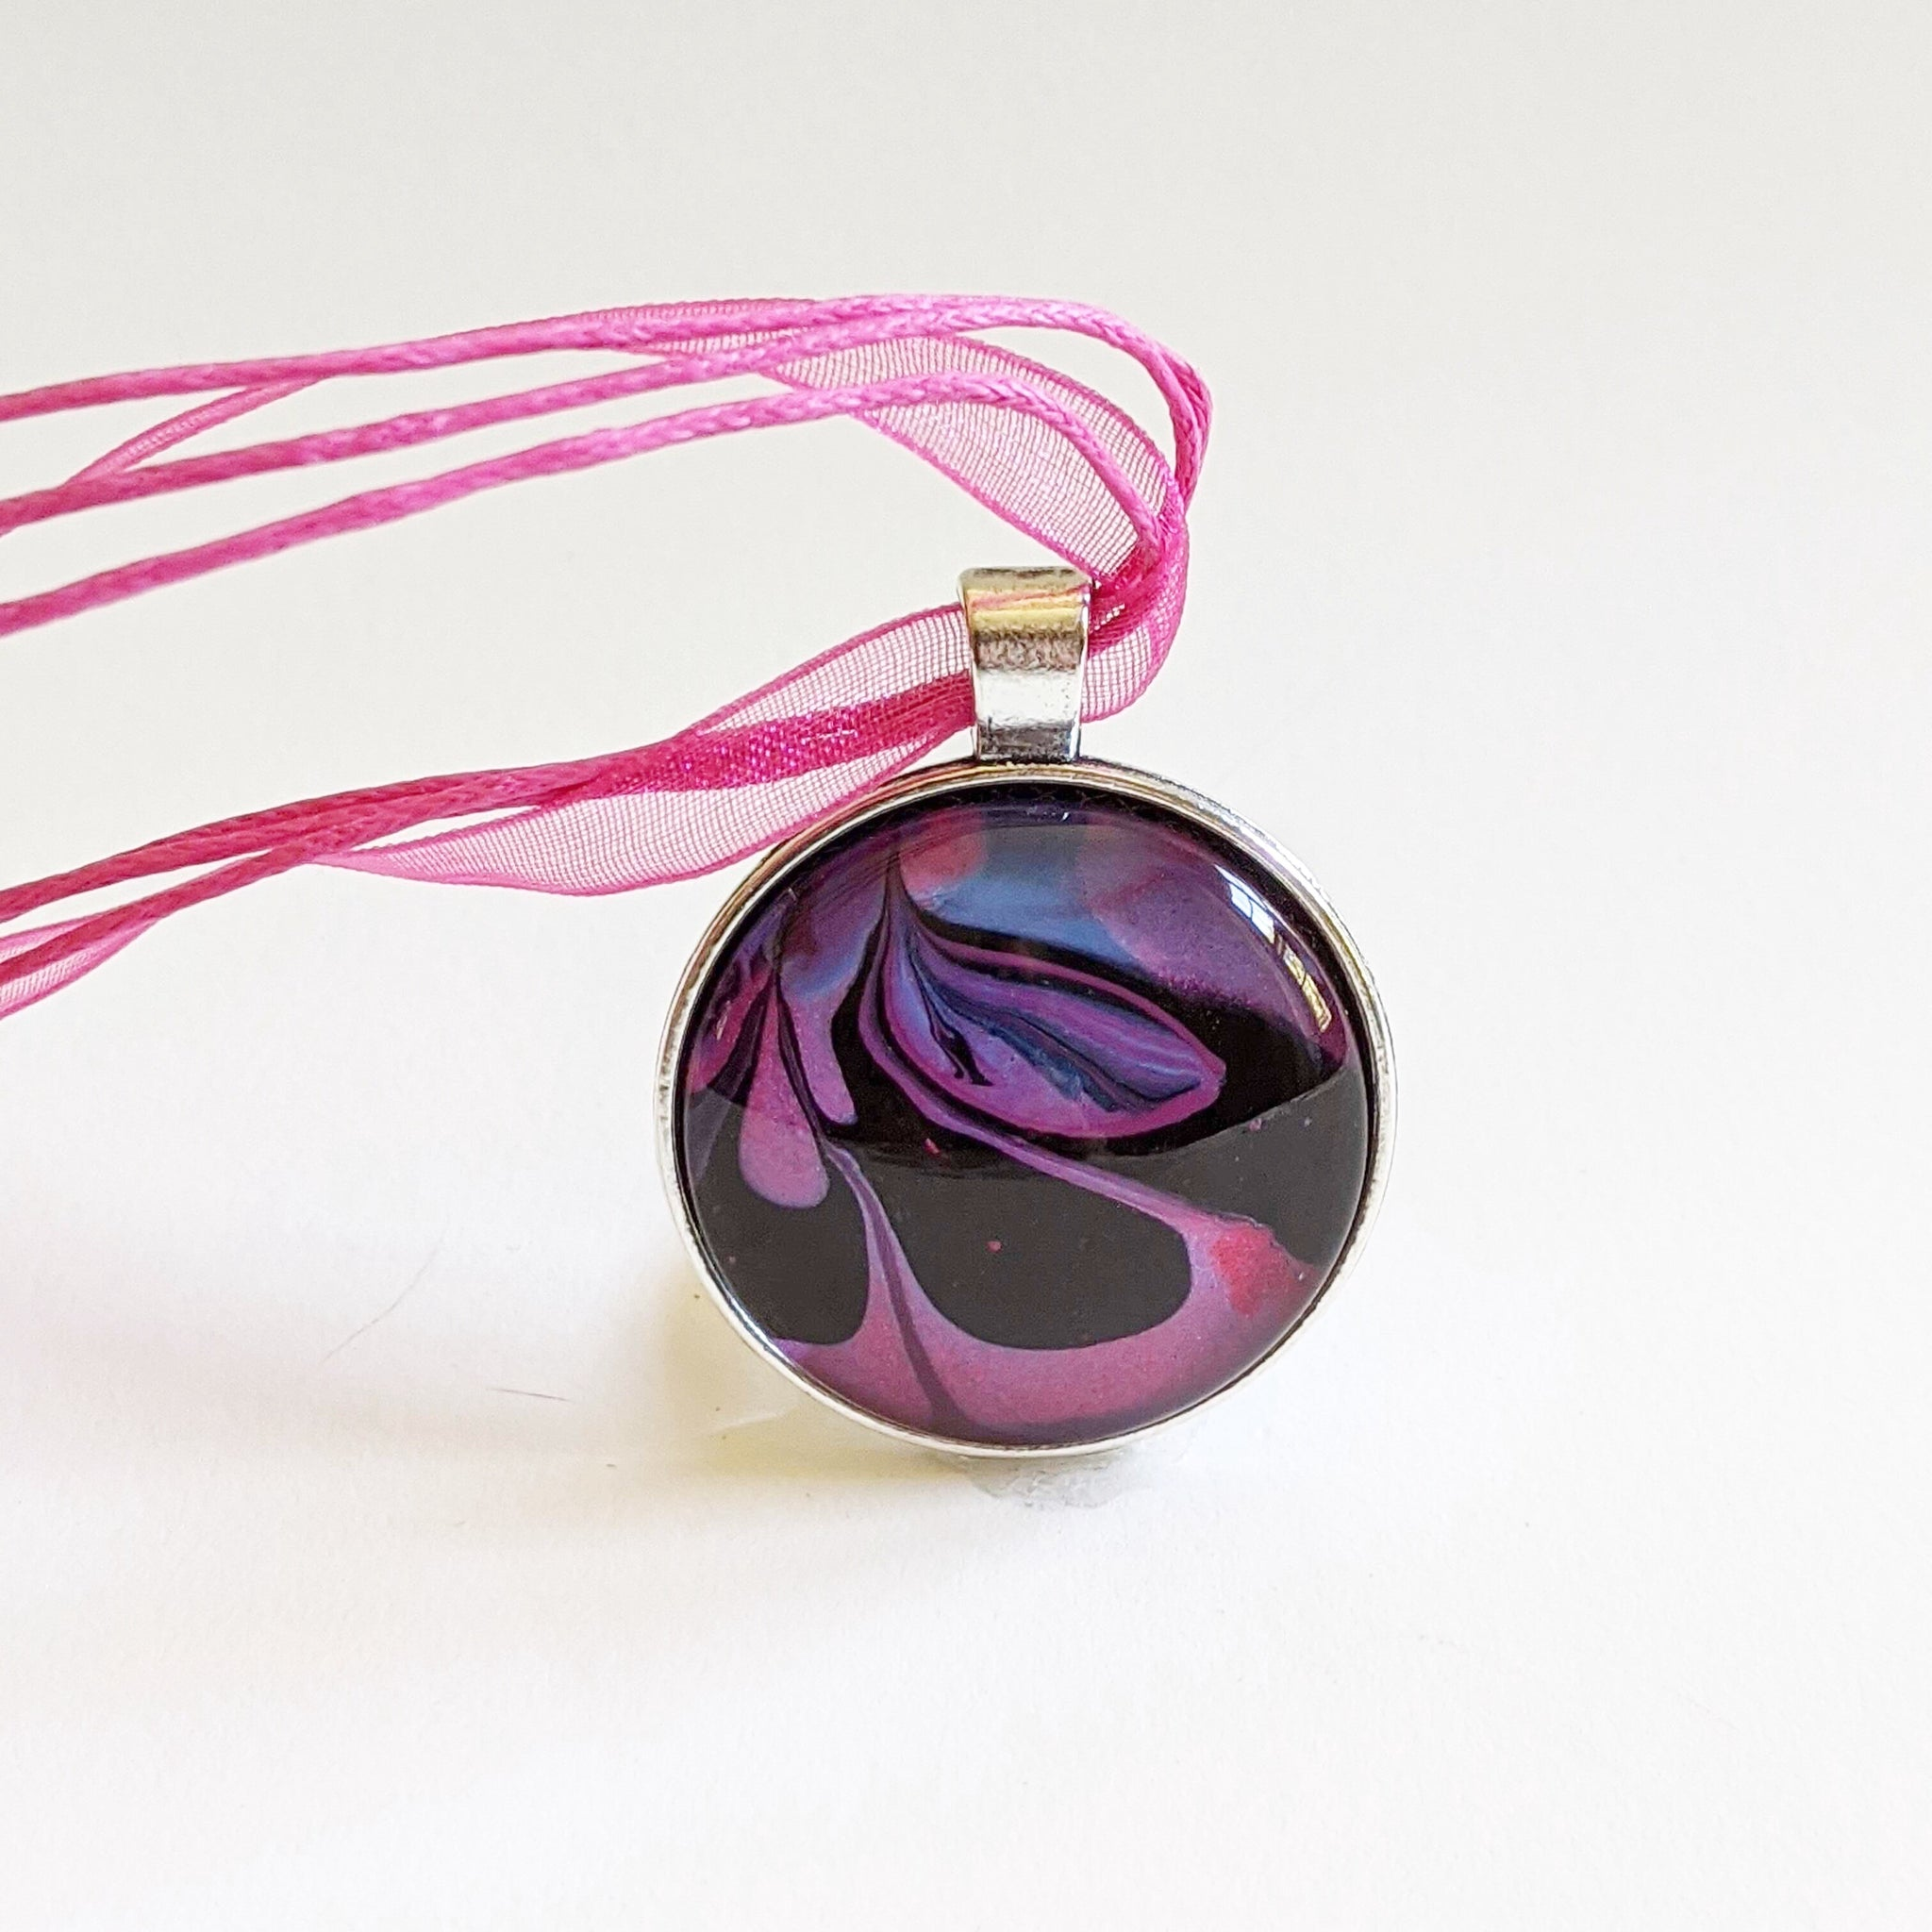 Pendant Necklace, Bright Swirls-Jewelry-Fullamoon Designs